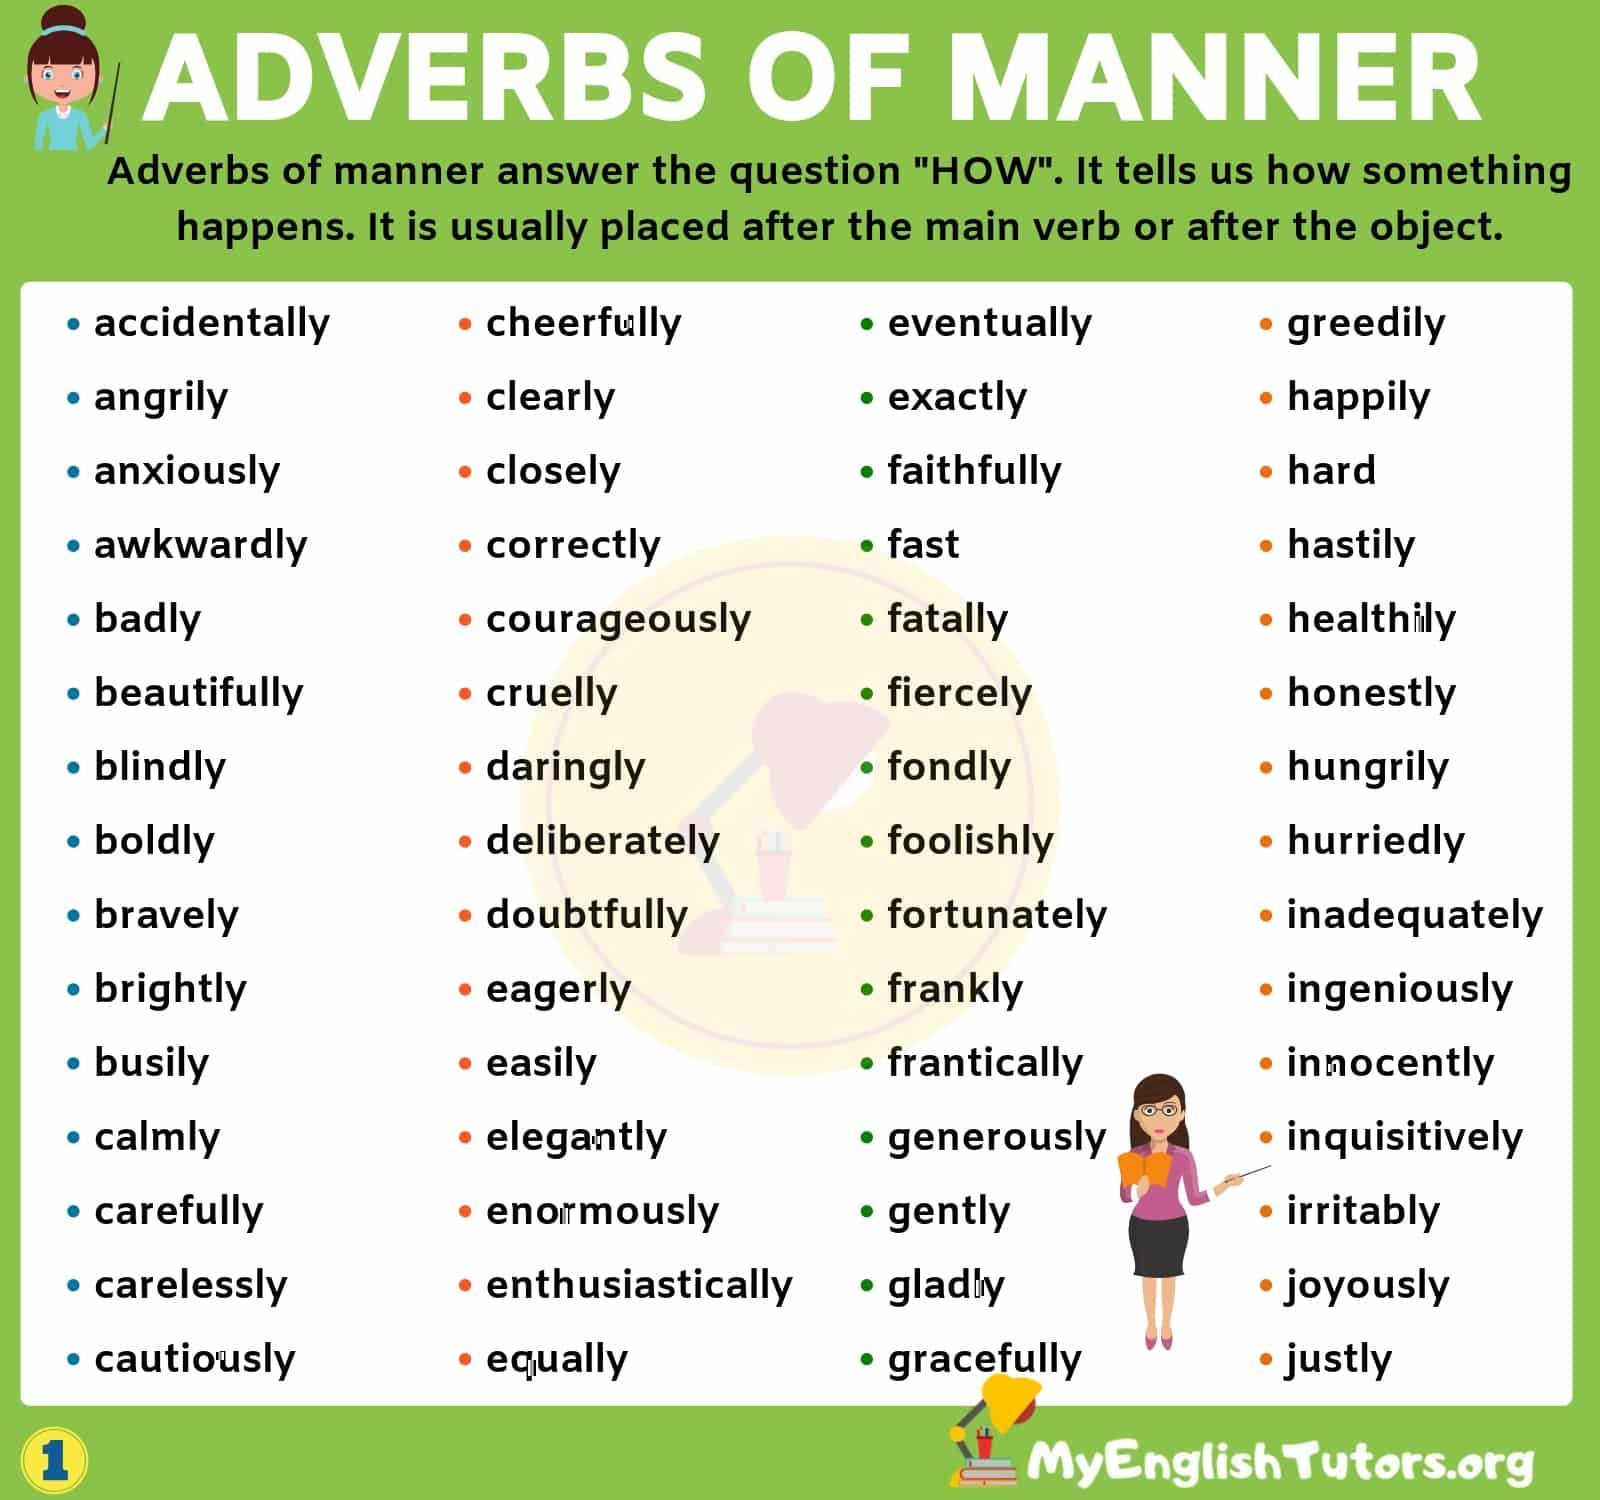 An Important List Of Adverbs Of Manner You Should Learn In